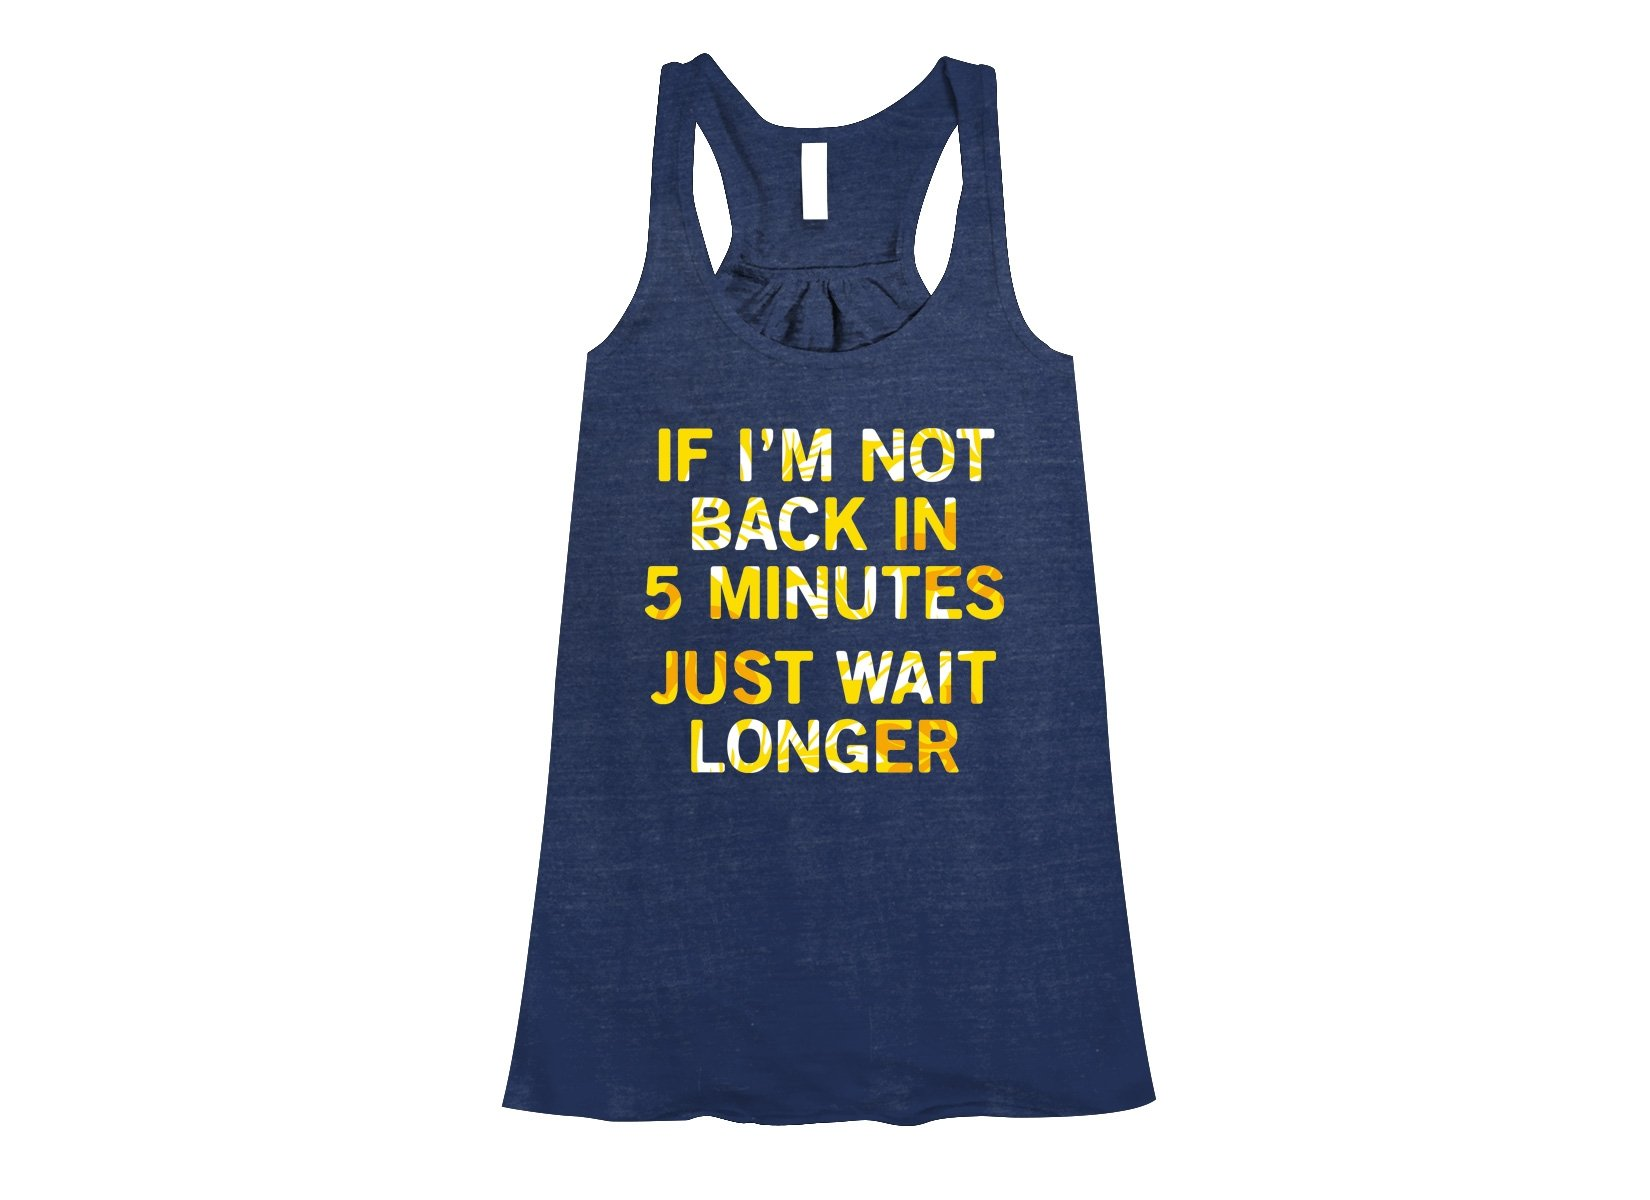 If I'm Not Back In 5 Minutes, Just Wait Longer on Womens Tanks T-Shirt